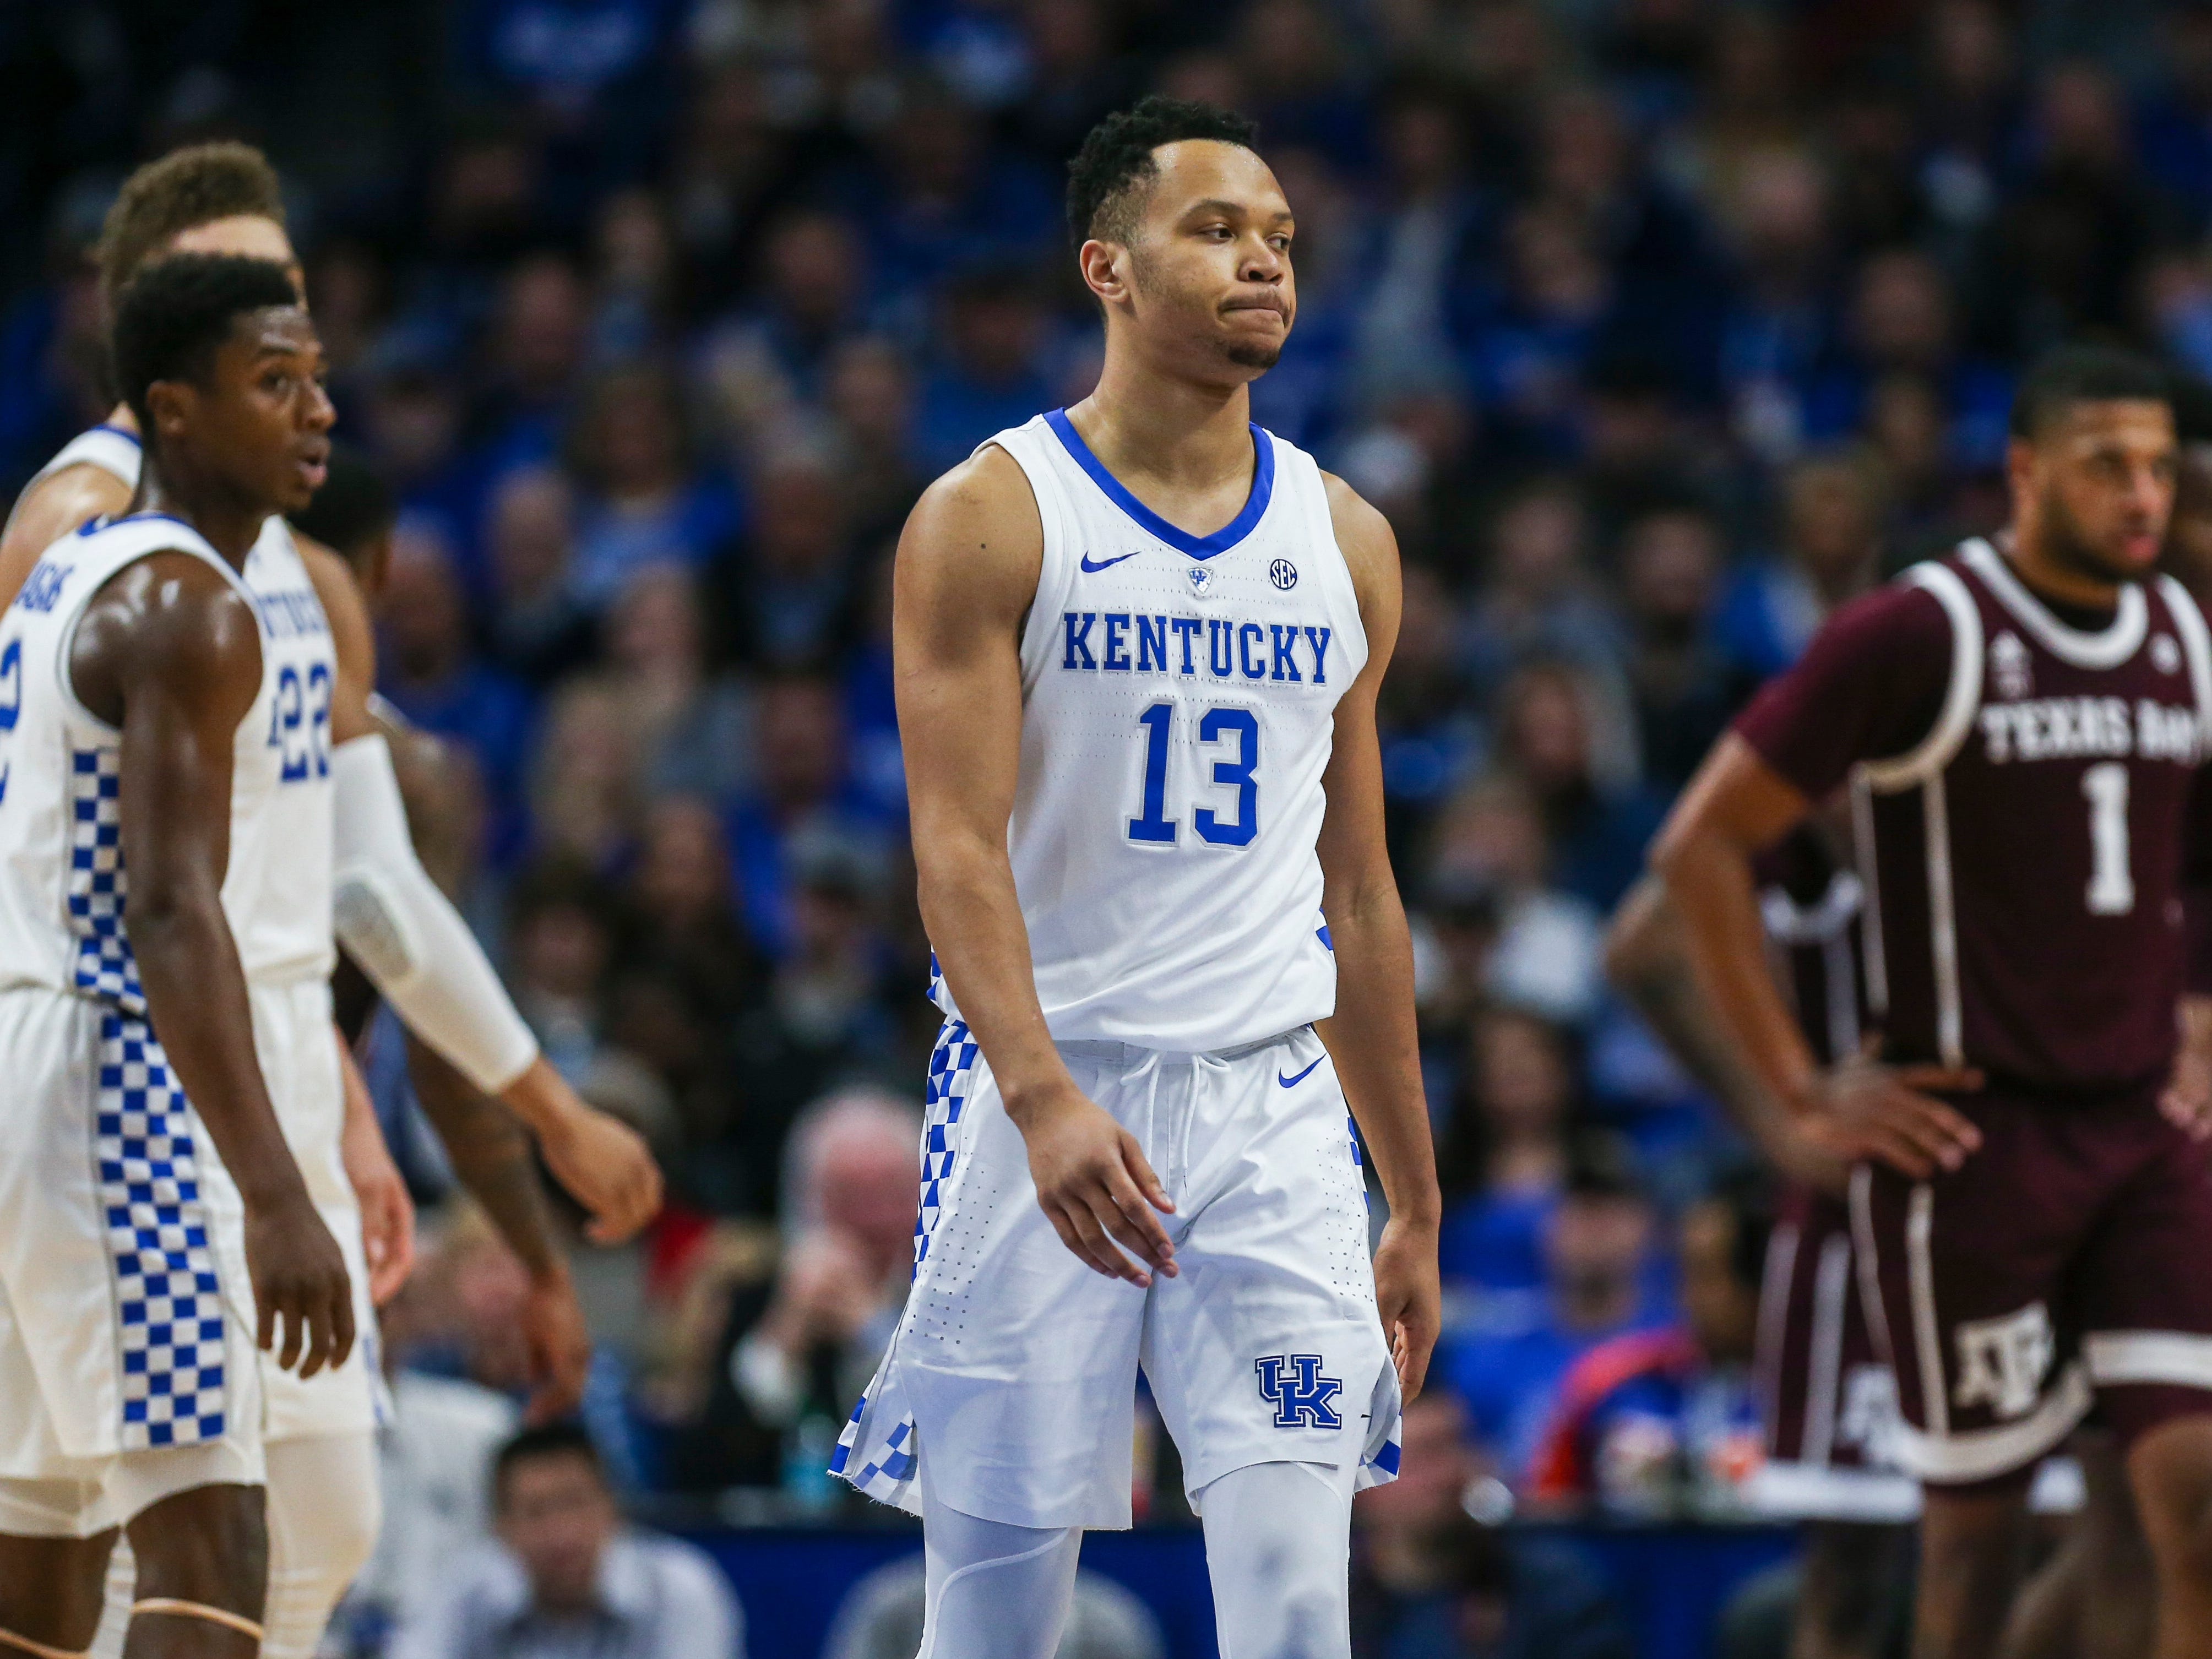 "Kentucky's Jemarl Baker had four rebounds with three assists in the Cats' 85-74 win Jan. 8, 2019 at Rupp Arena. ""I thought (Jemarl) wasn't playing for himself,"" said coach John Calipari after the game. ""If a guy was open, he threw it to him and guess what? It changed a whole complexion of the game."""